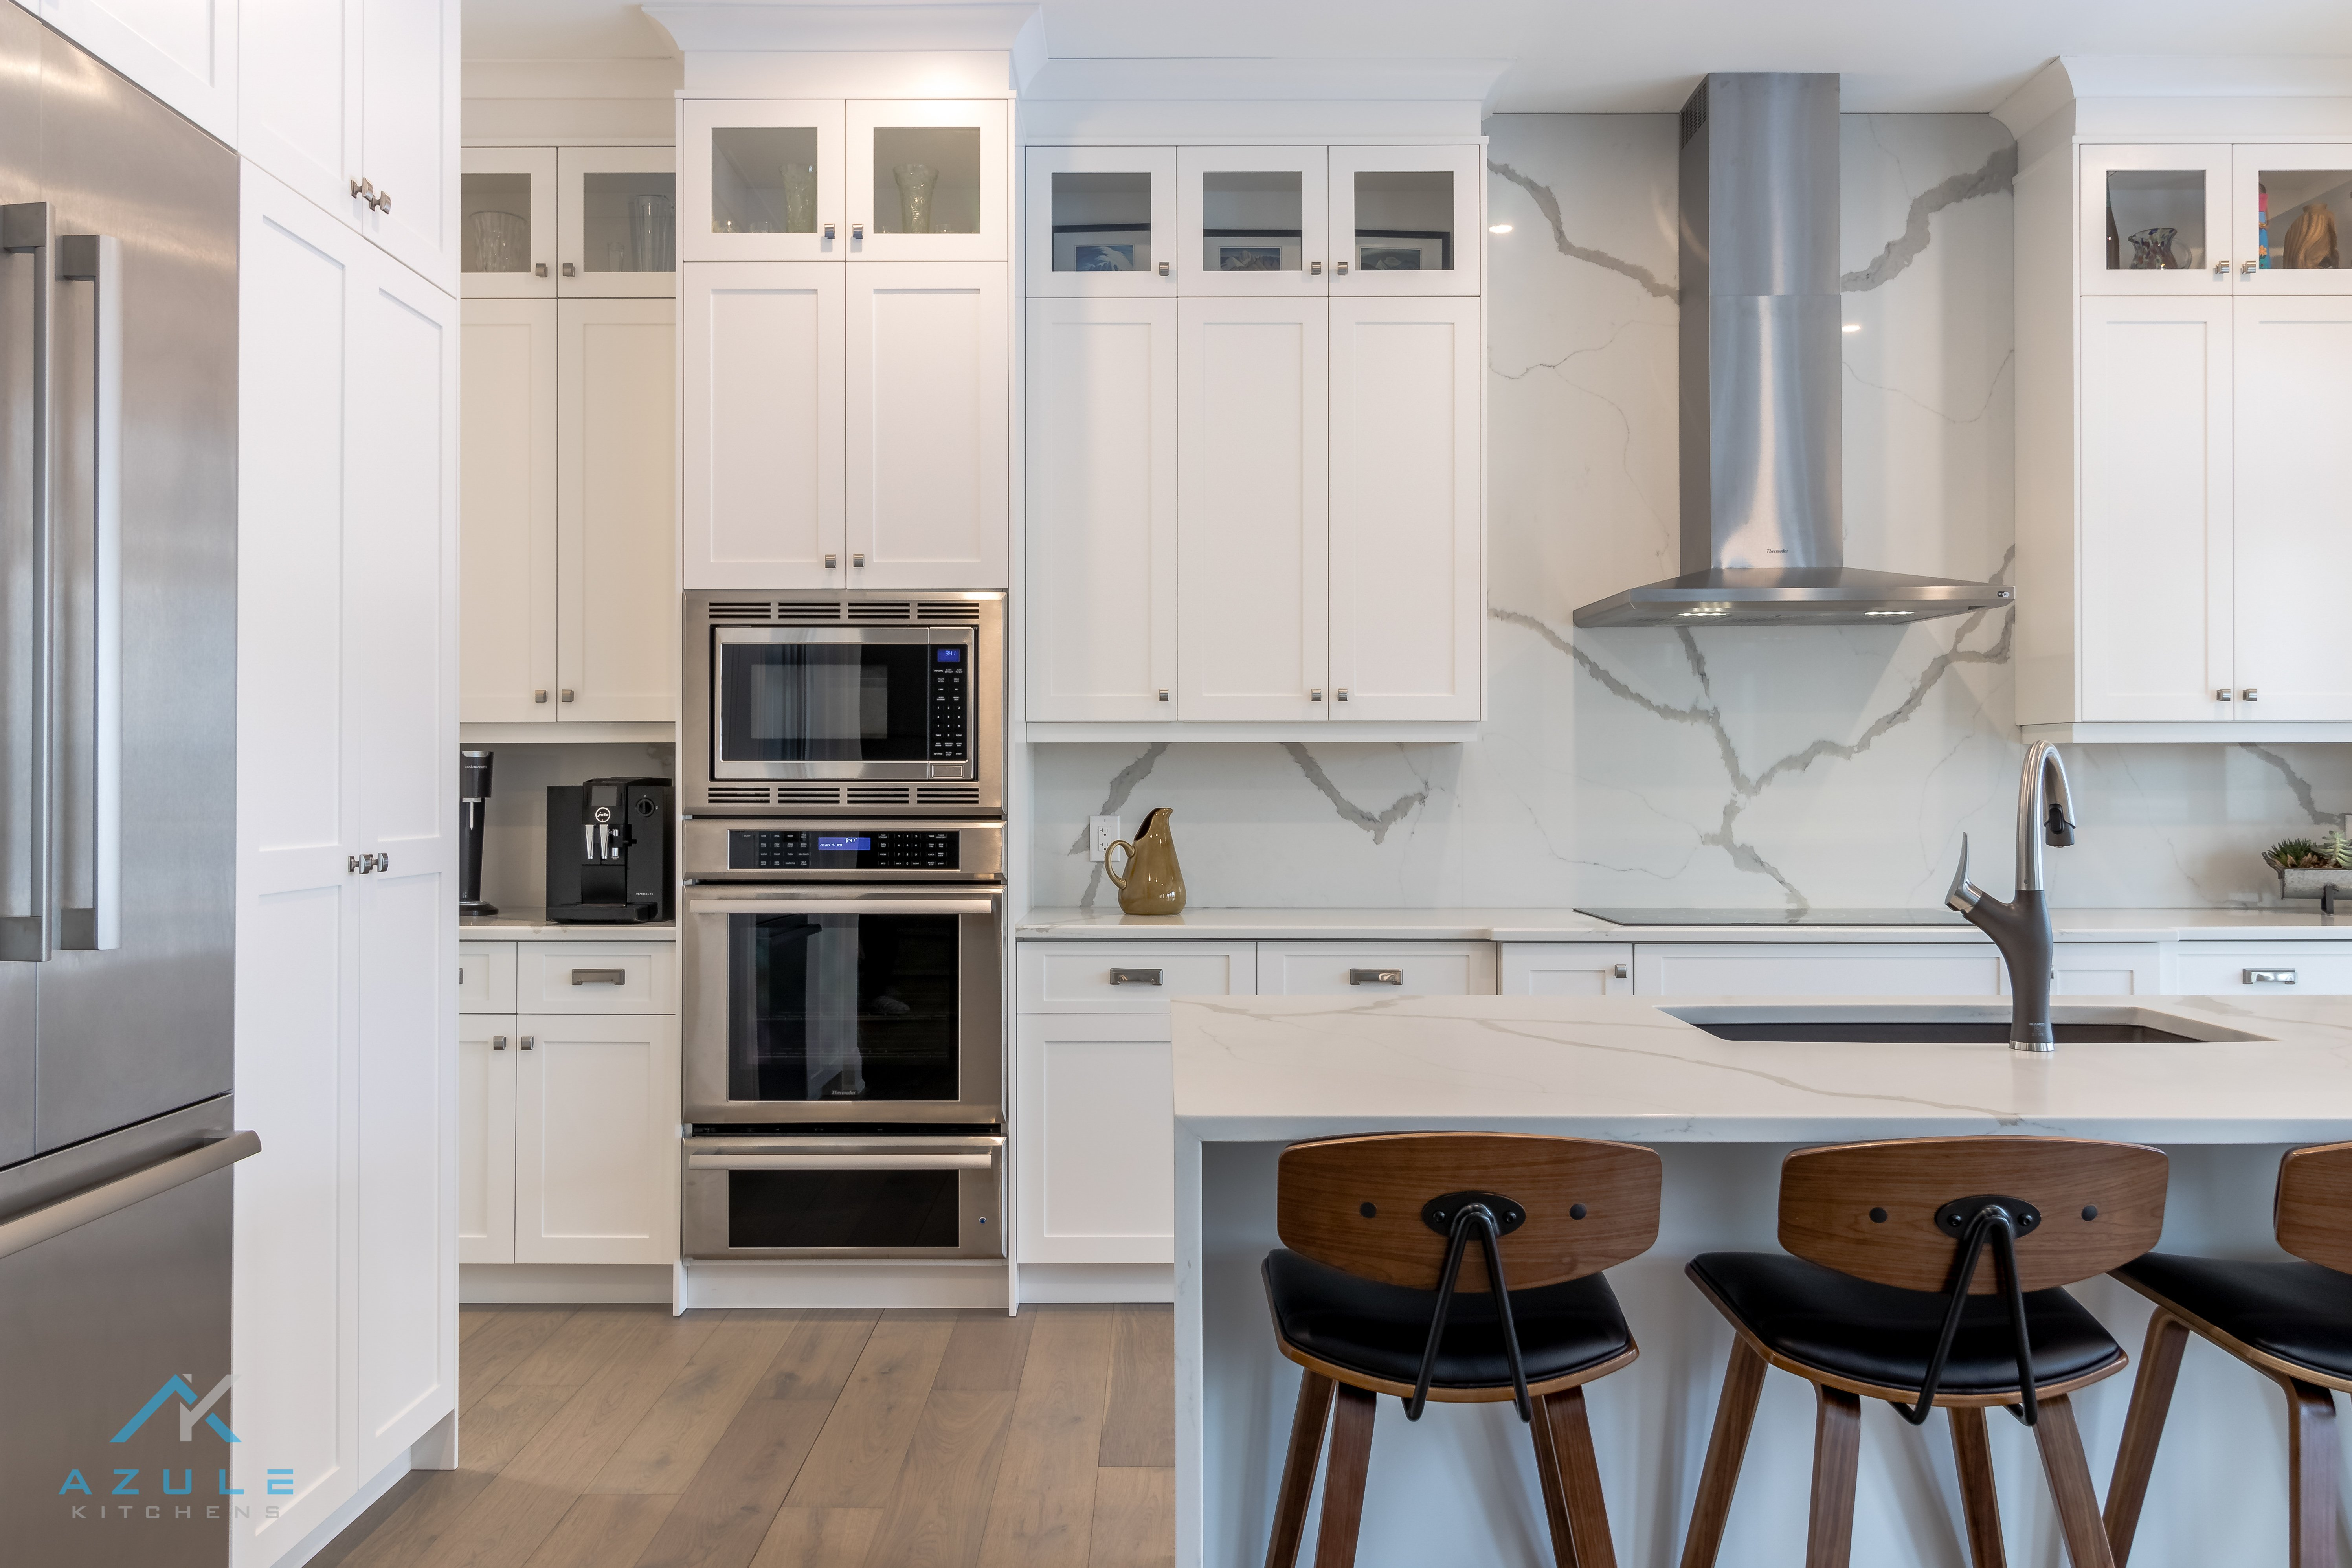 Azule Kitchens – Change the Look of your Kitchen with Custom Kitchen Cabinets